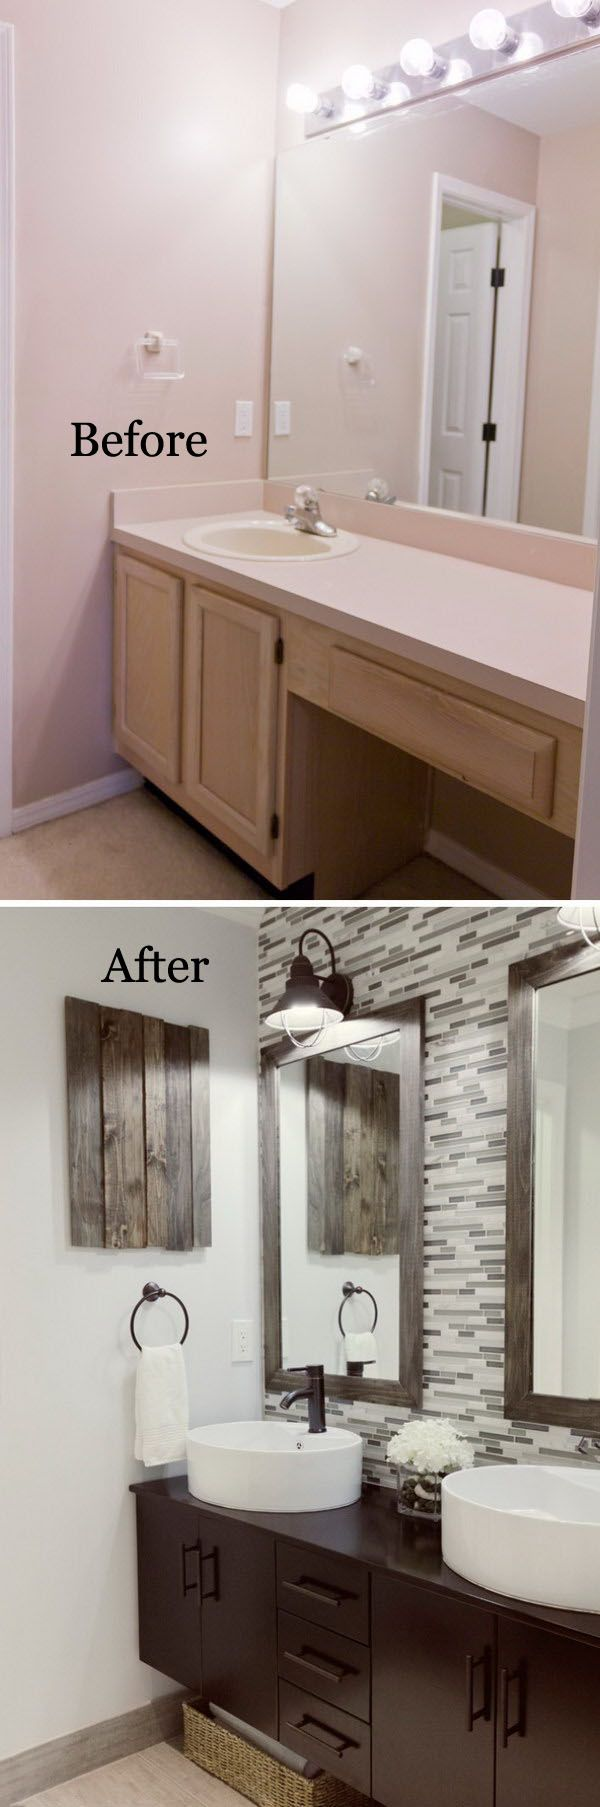 Bathroom Renovation Ideas Images top 25+ best bathroom renovations ideas on pinterest | bathroom